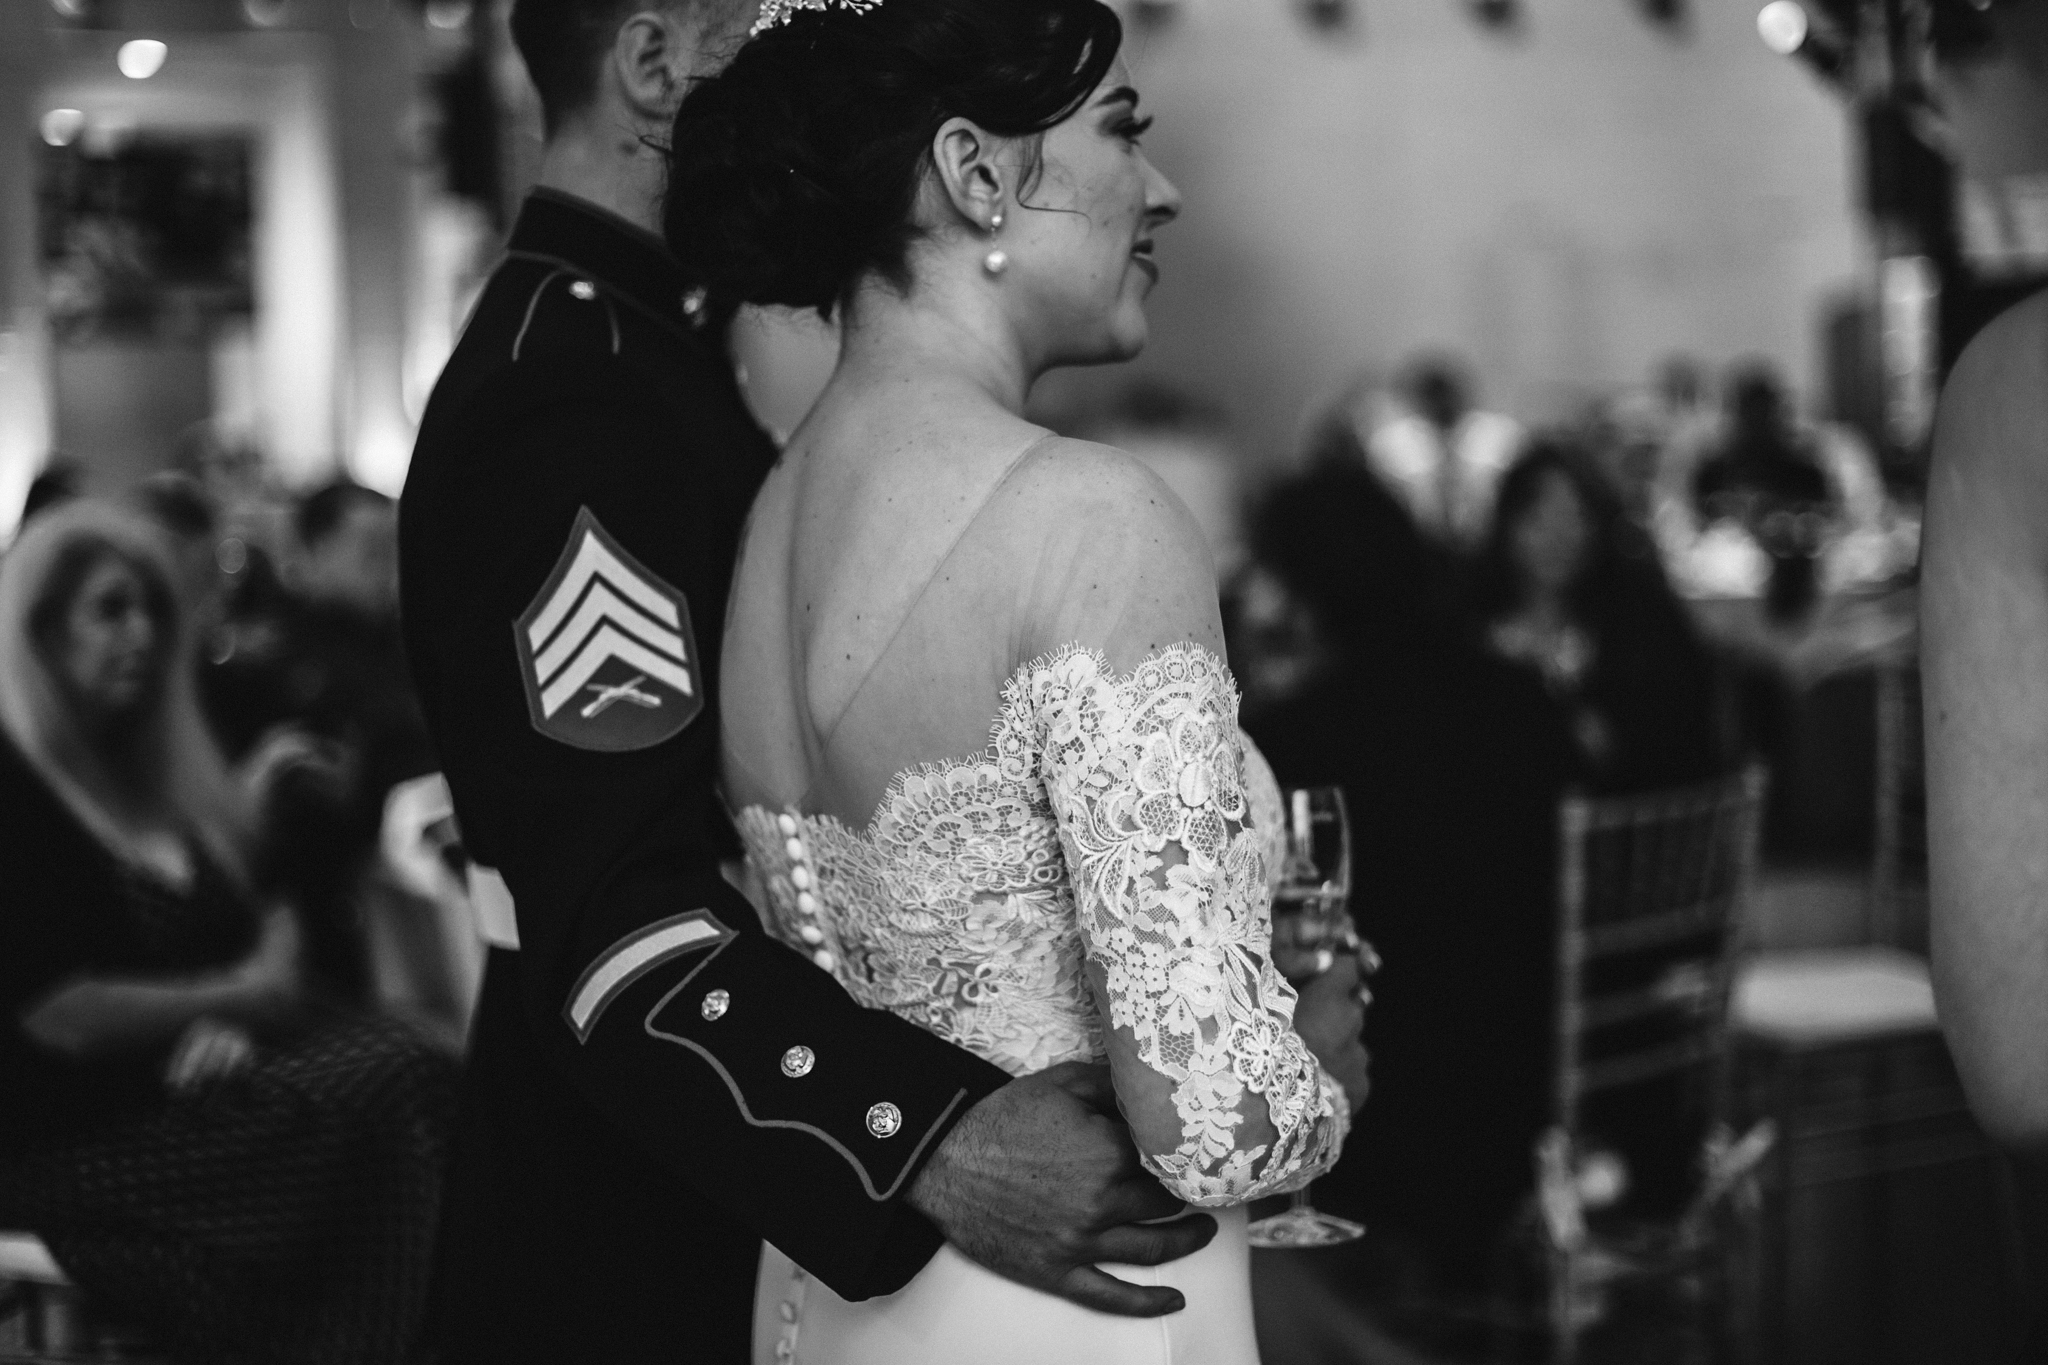 solinsky_wedding_national_museum_of_marine_corp-30.jpg